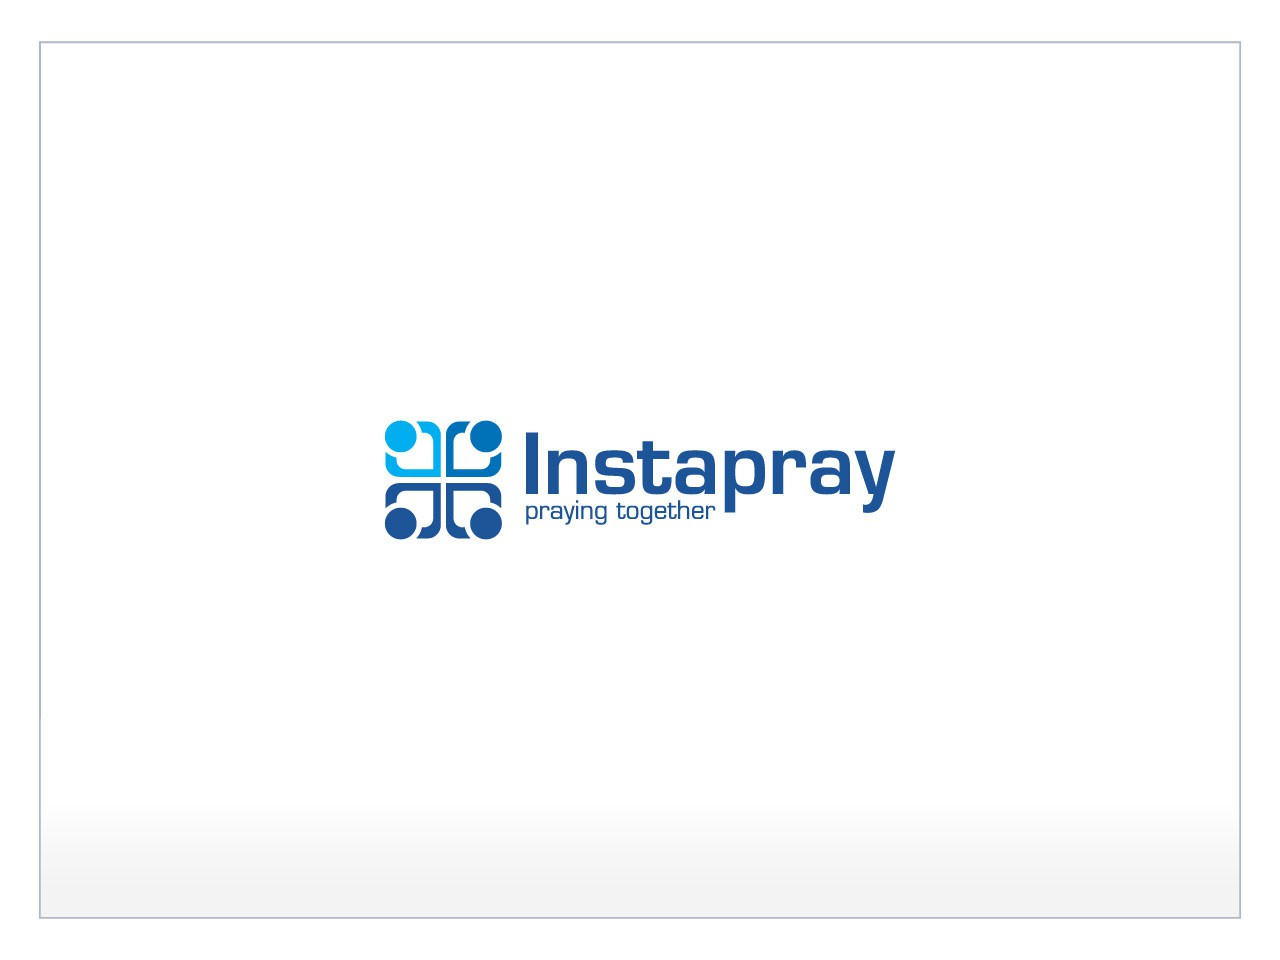 New logo wanted for Instapray